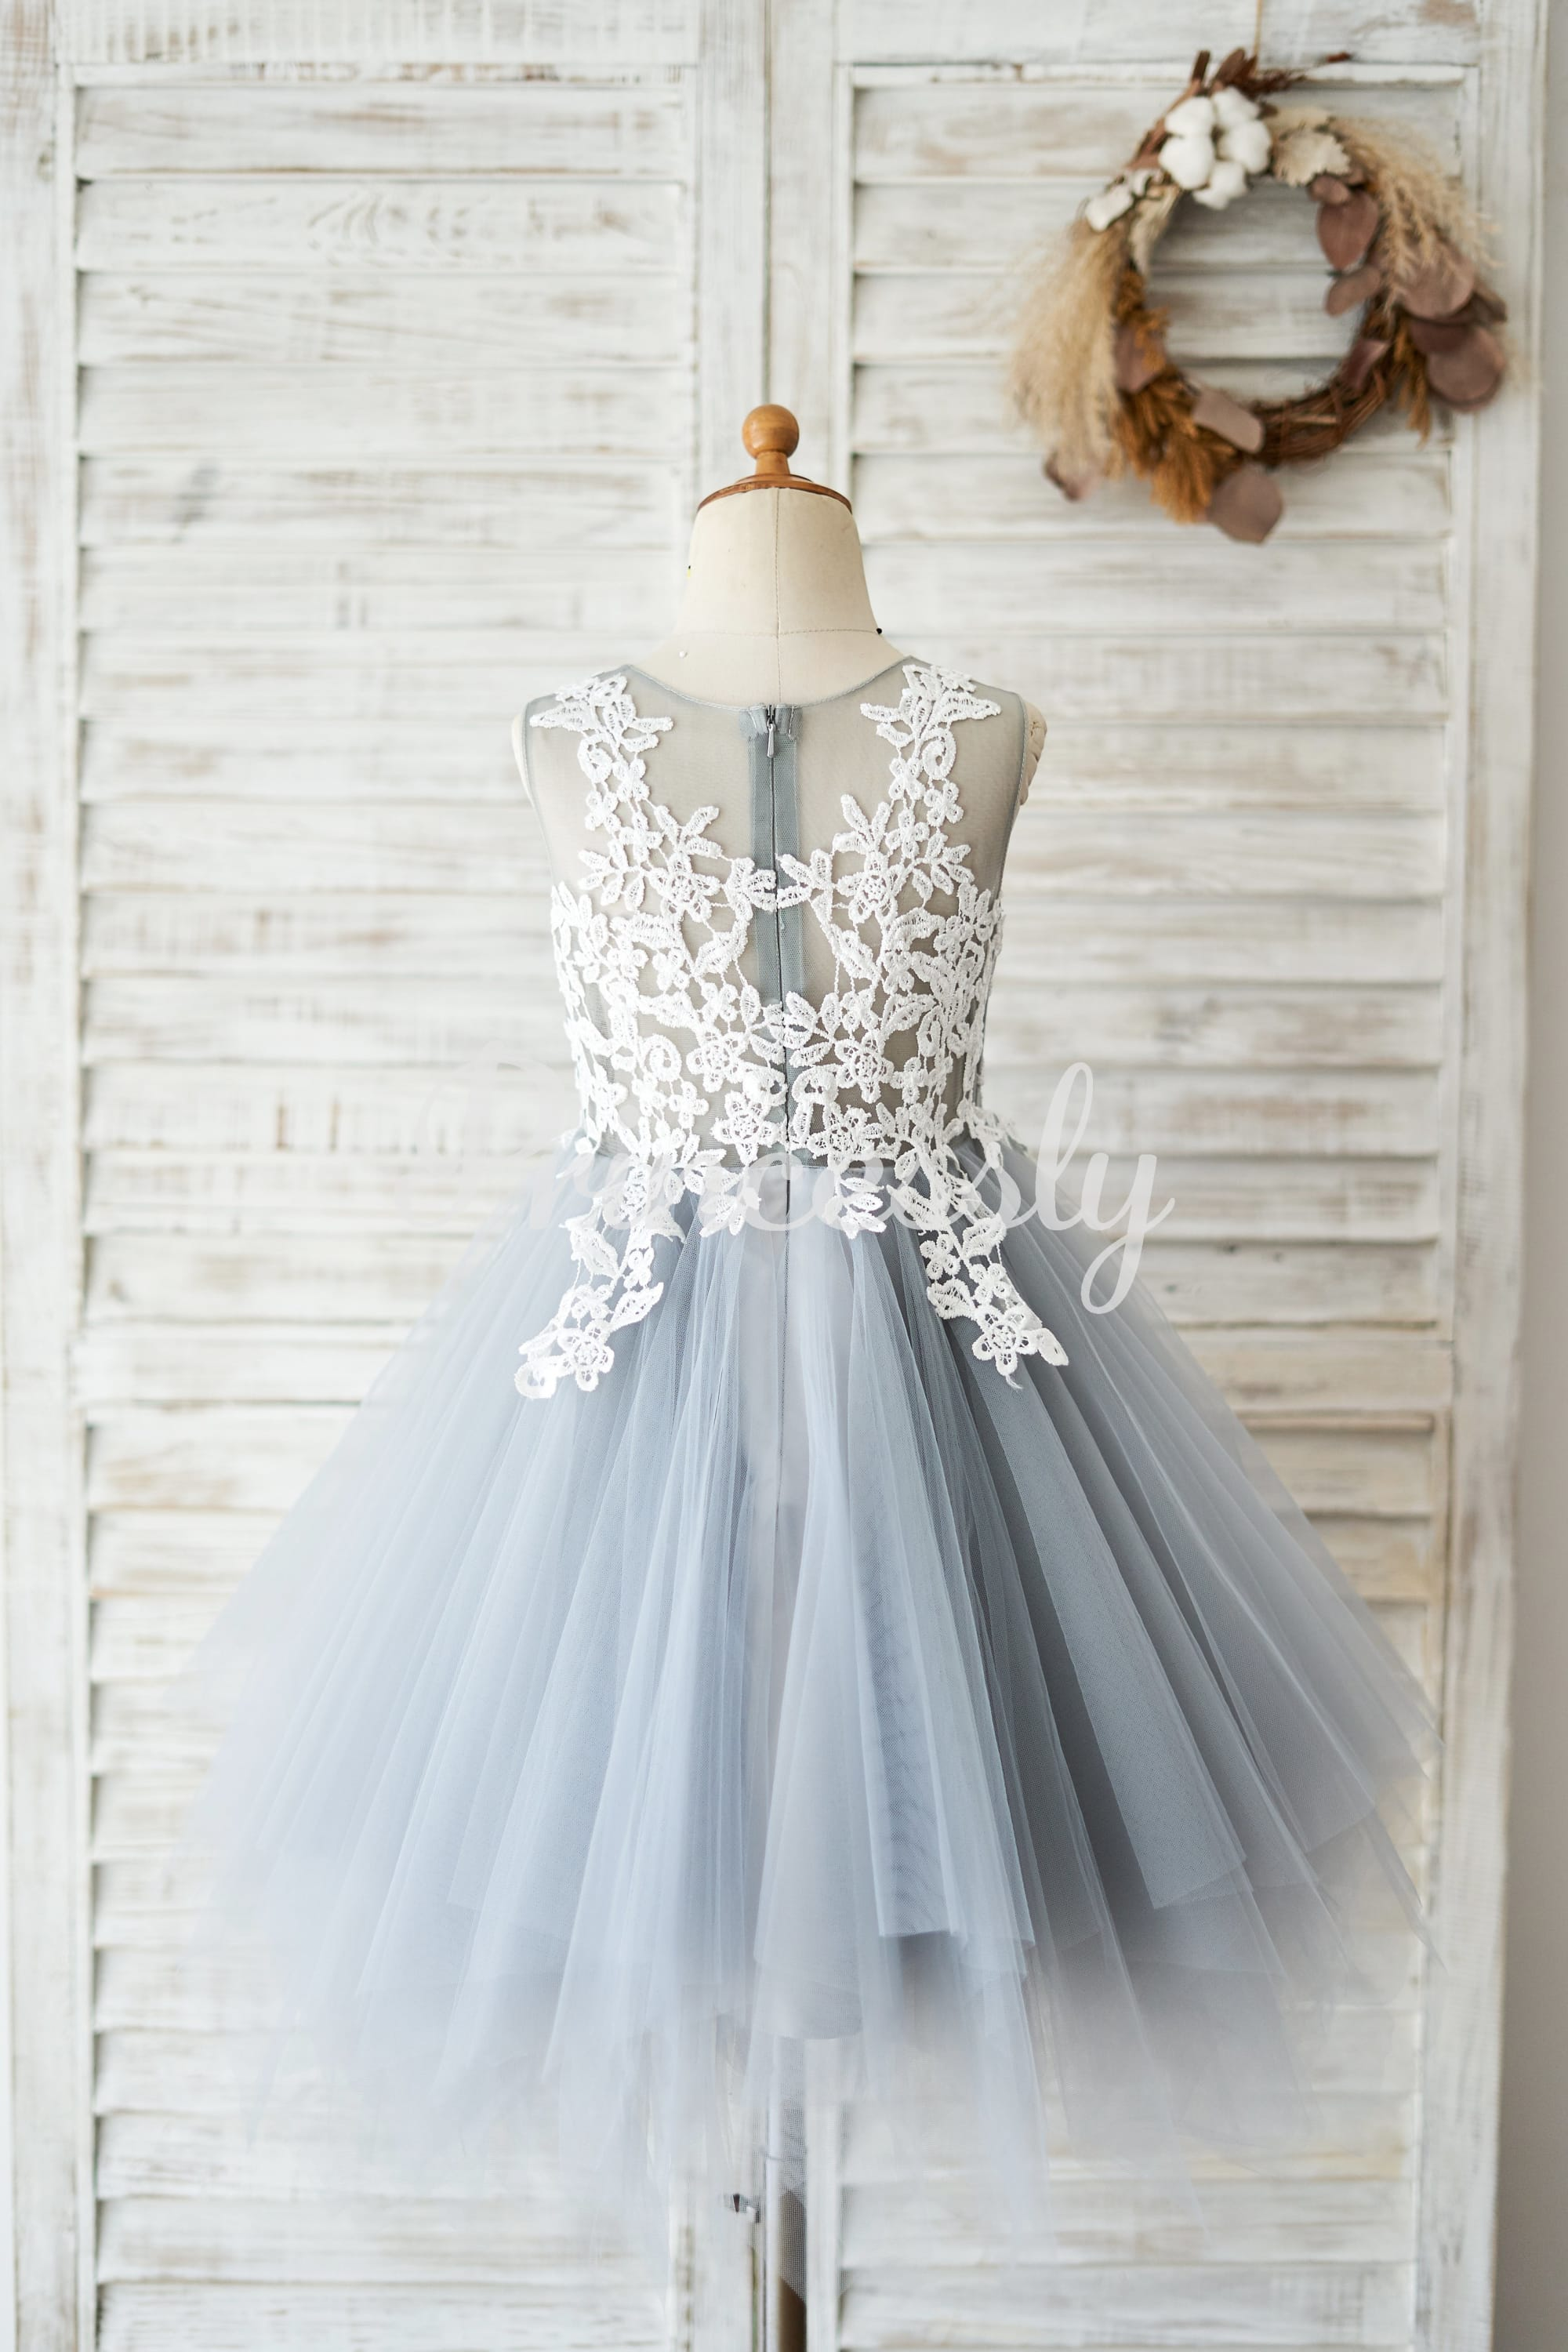 Princess Ivory Lace Gray Tulle Wedding Flower Girl Dress